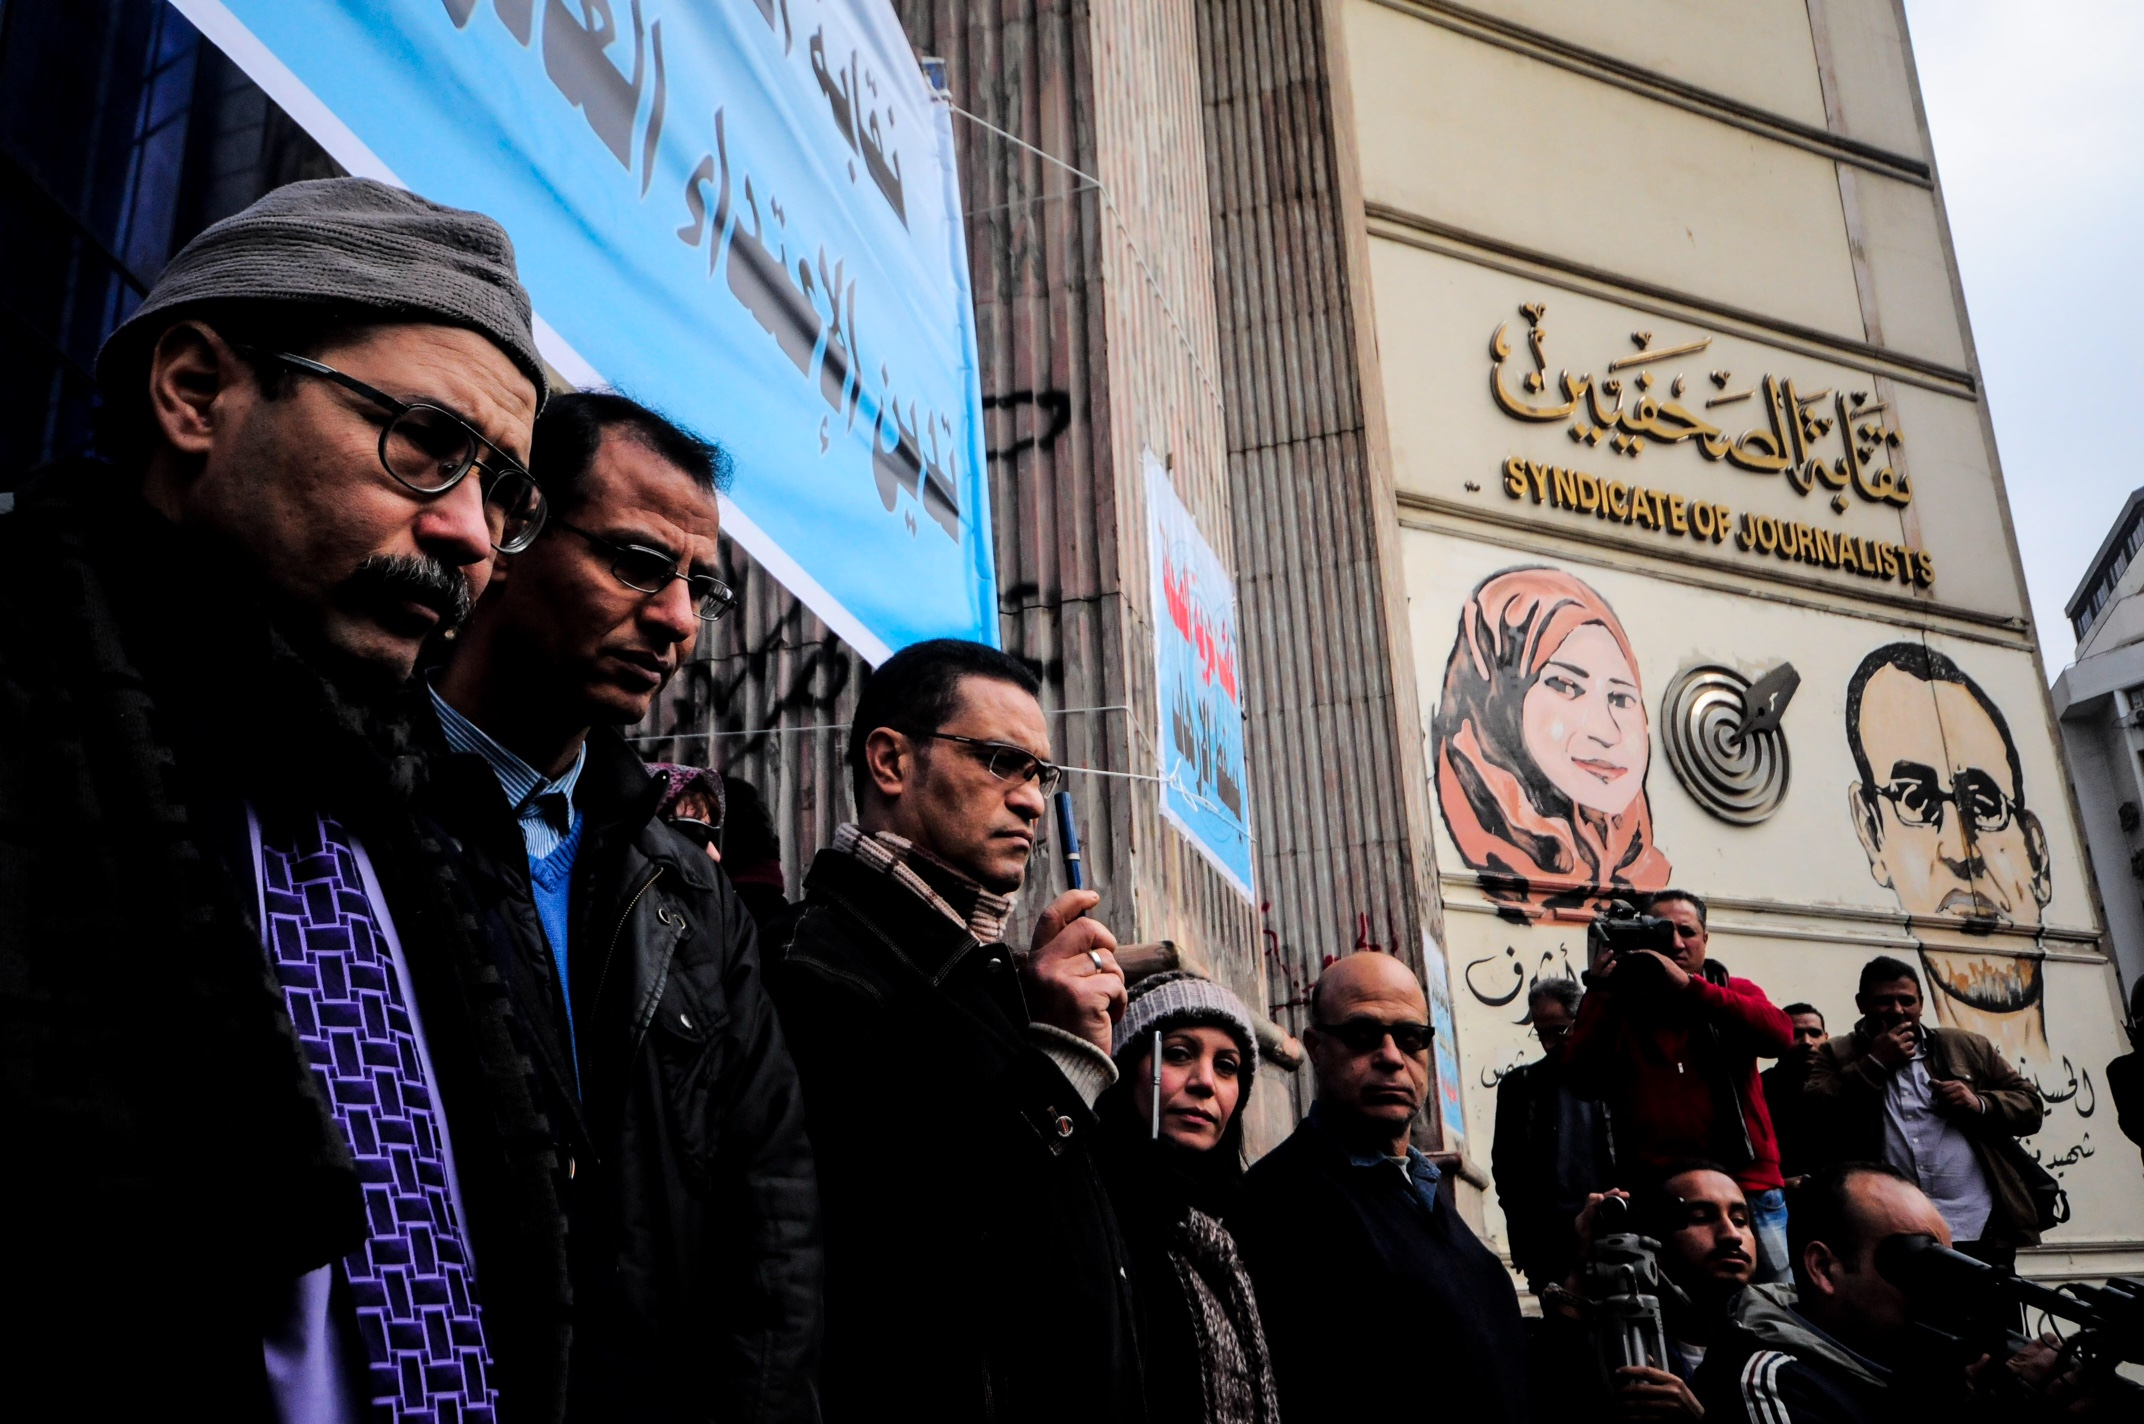 The Egyptian Press Syndicate. (Photo by Mahmoud Abou El Dahab/Daily News Egypt)